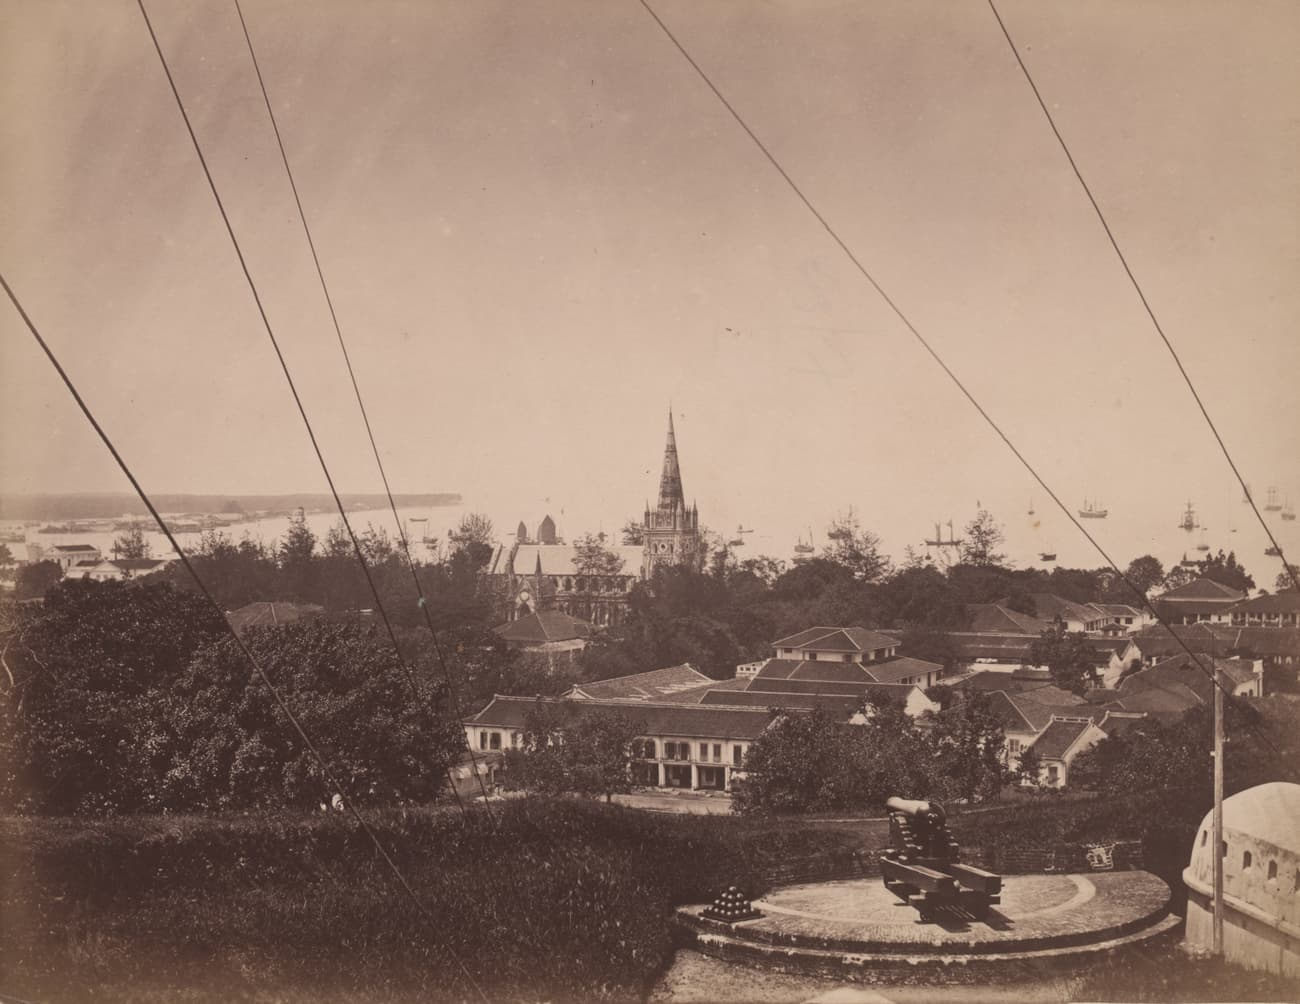 View from Fort Canning Hill, 1870s